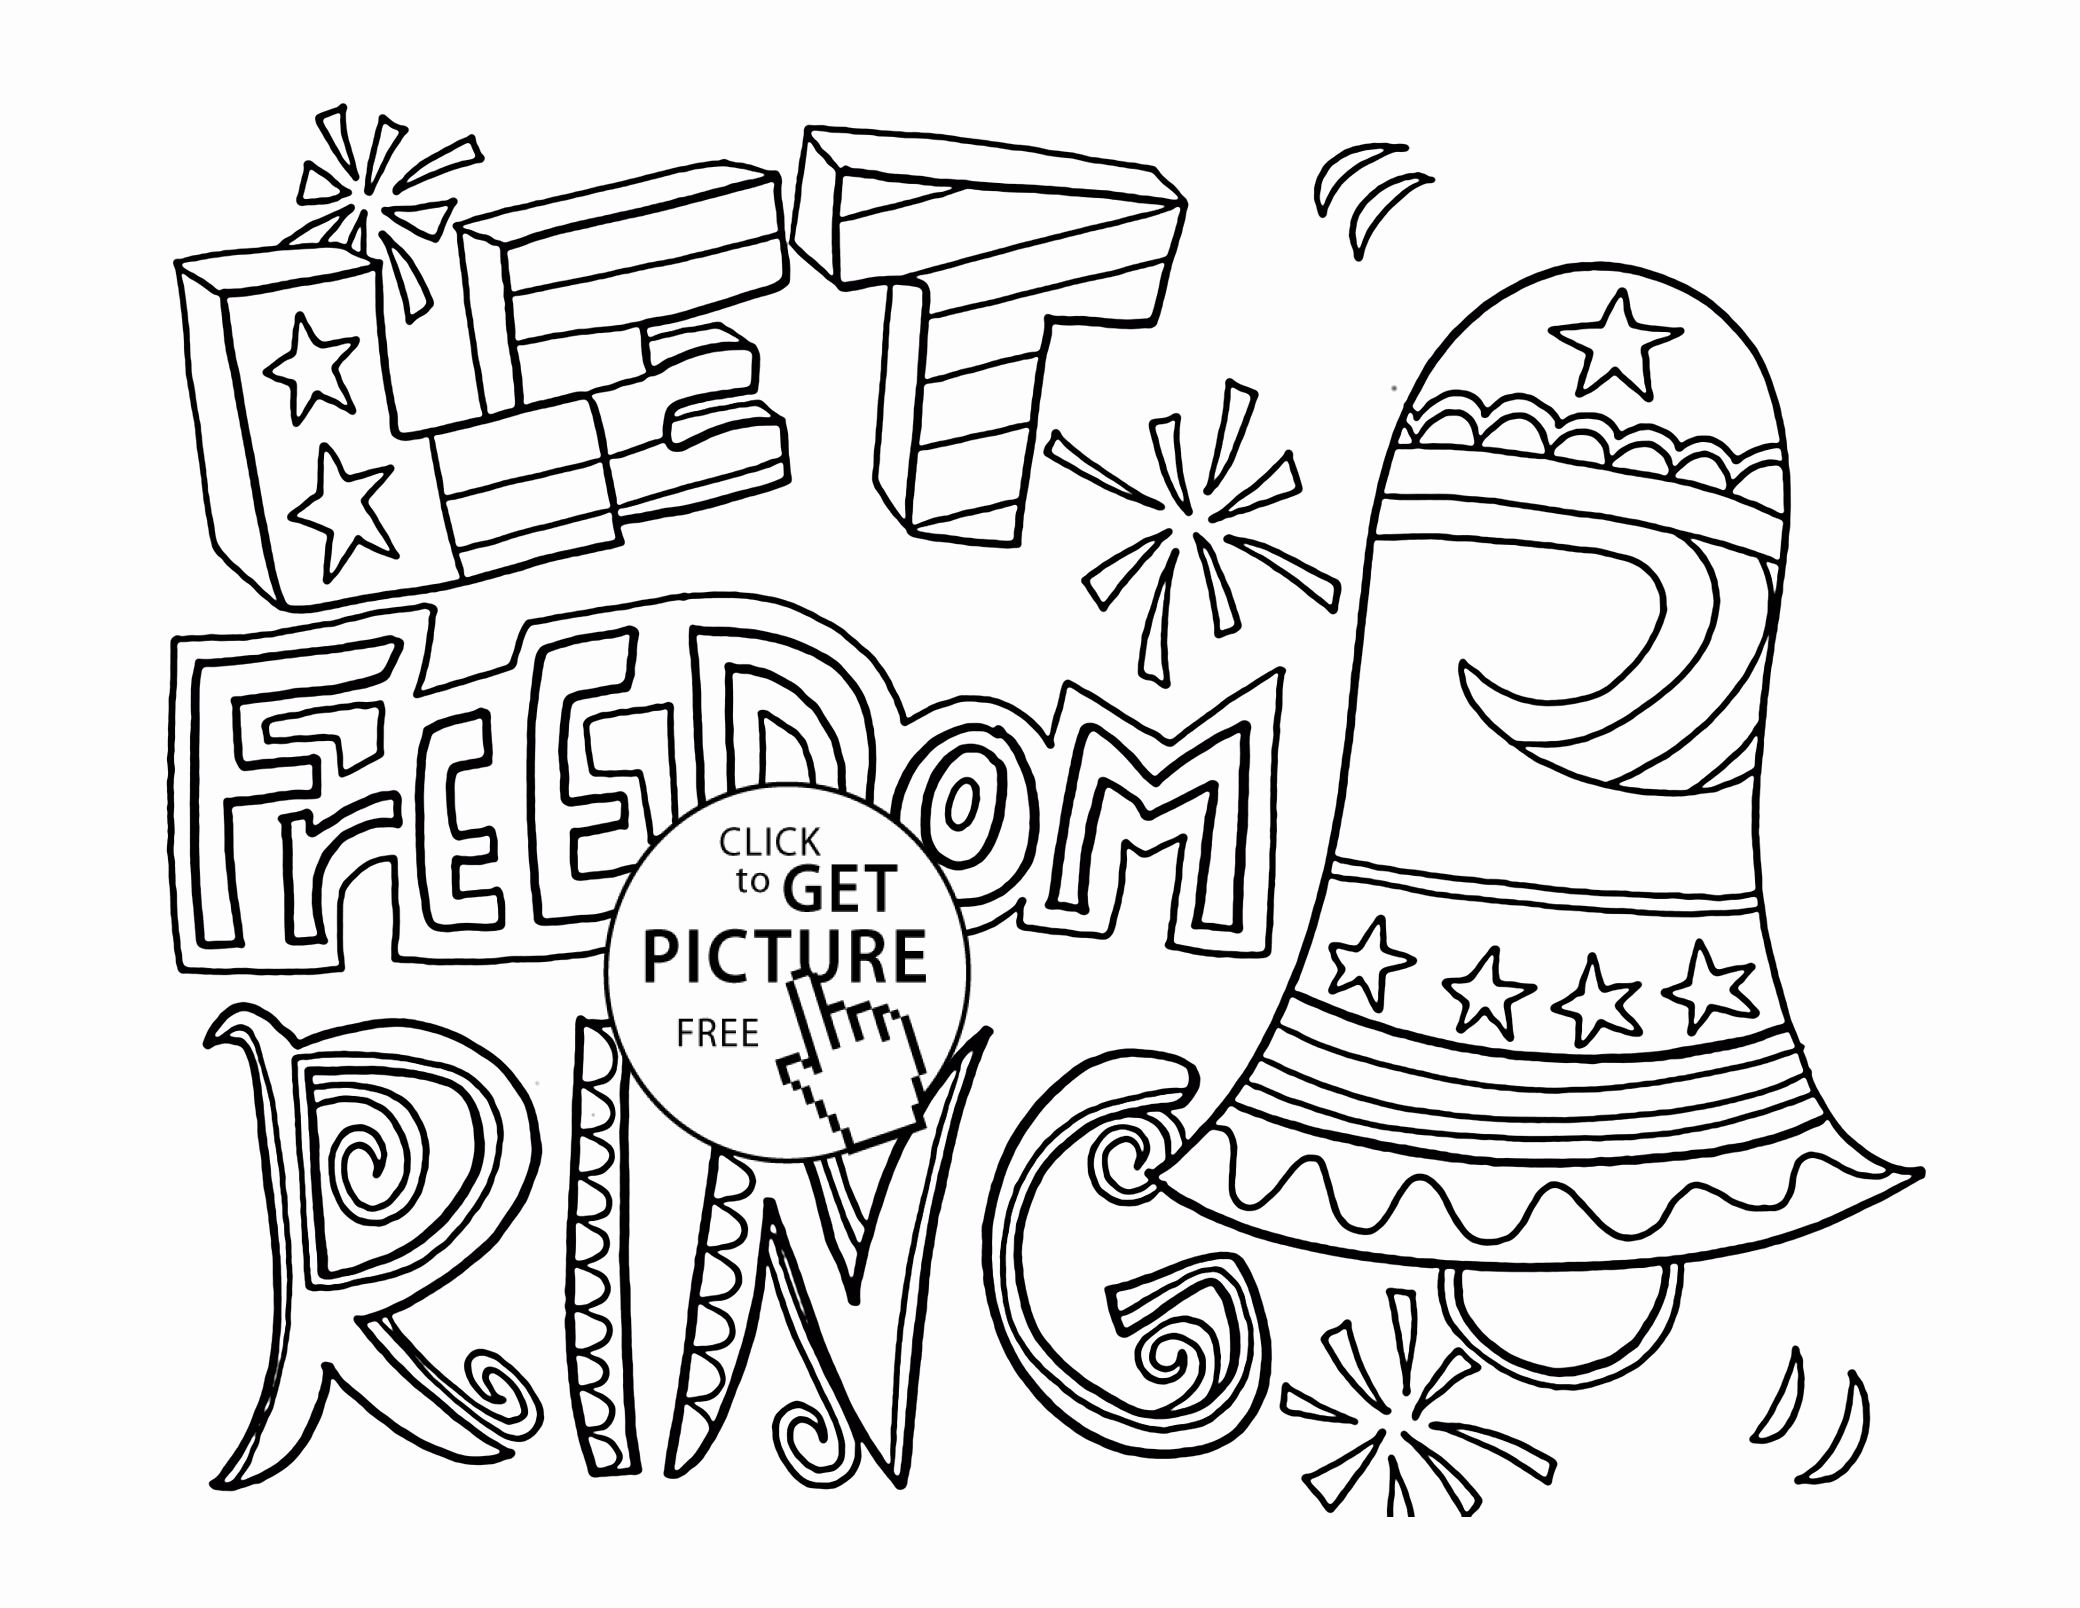 July 4th Coloring Pages Printable Best Of July 4th Coloring Page Coloring Home In 2020 Memorial Day Coloring Pages July Colors Personalized Coloring Book